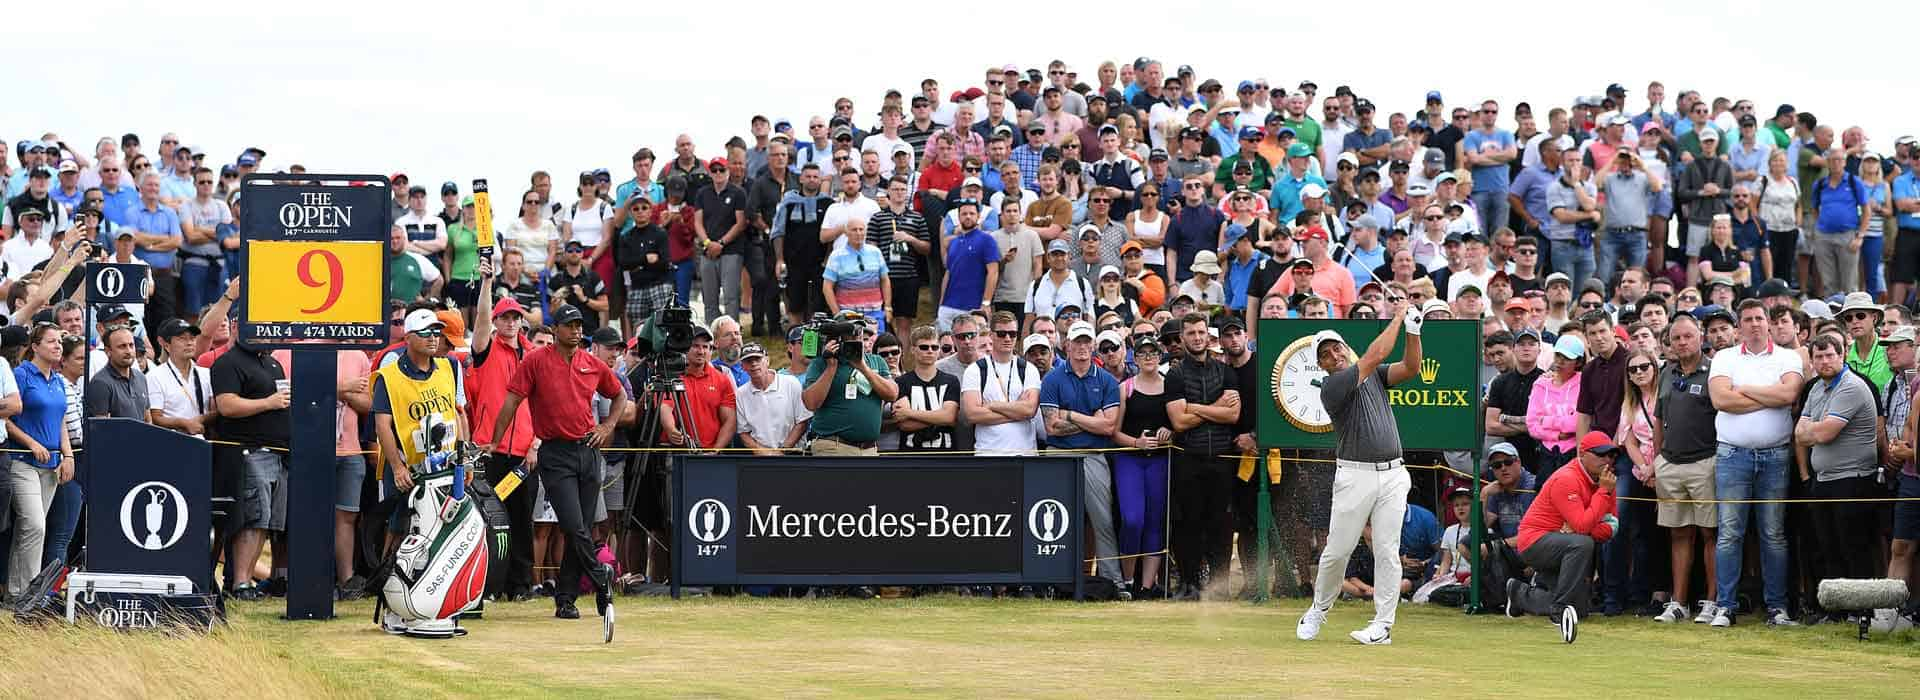 The-Open-St-Andrews-2022-Spectator-Information